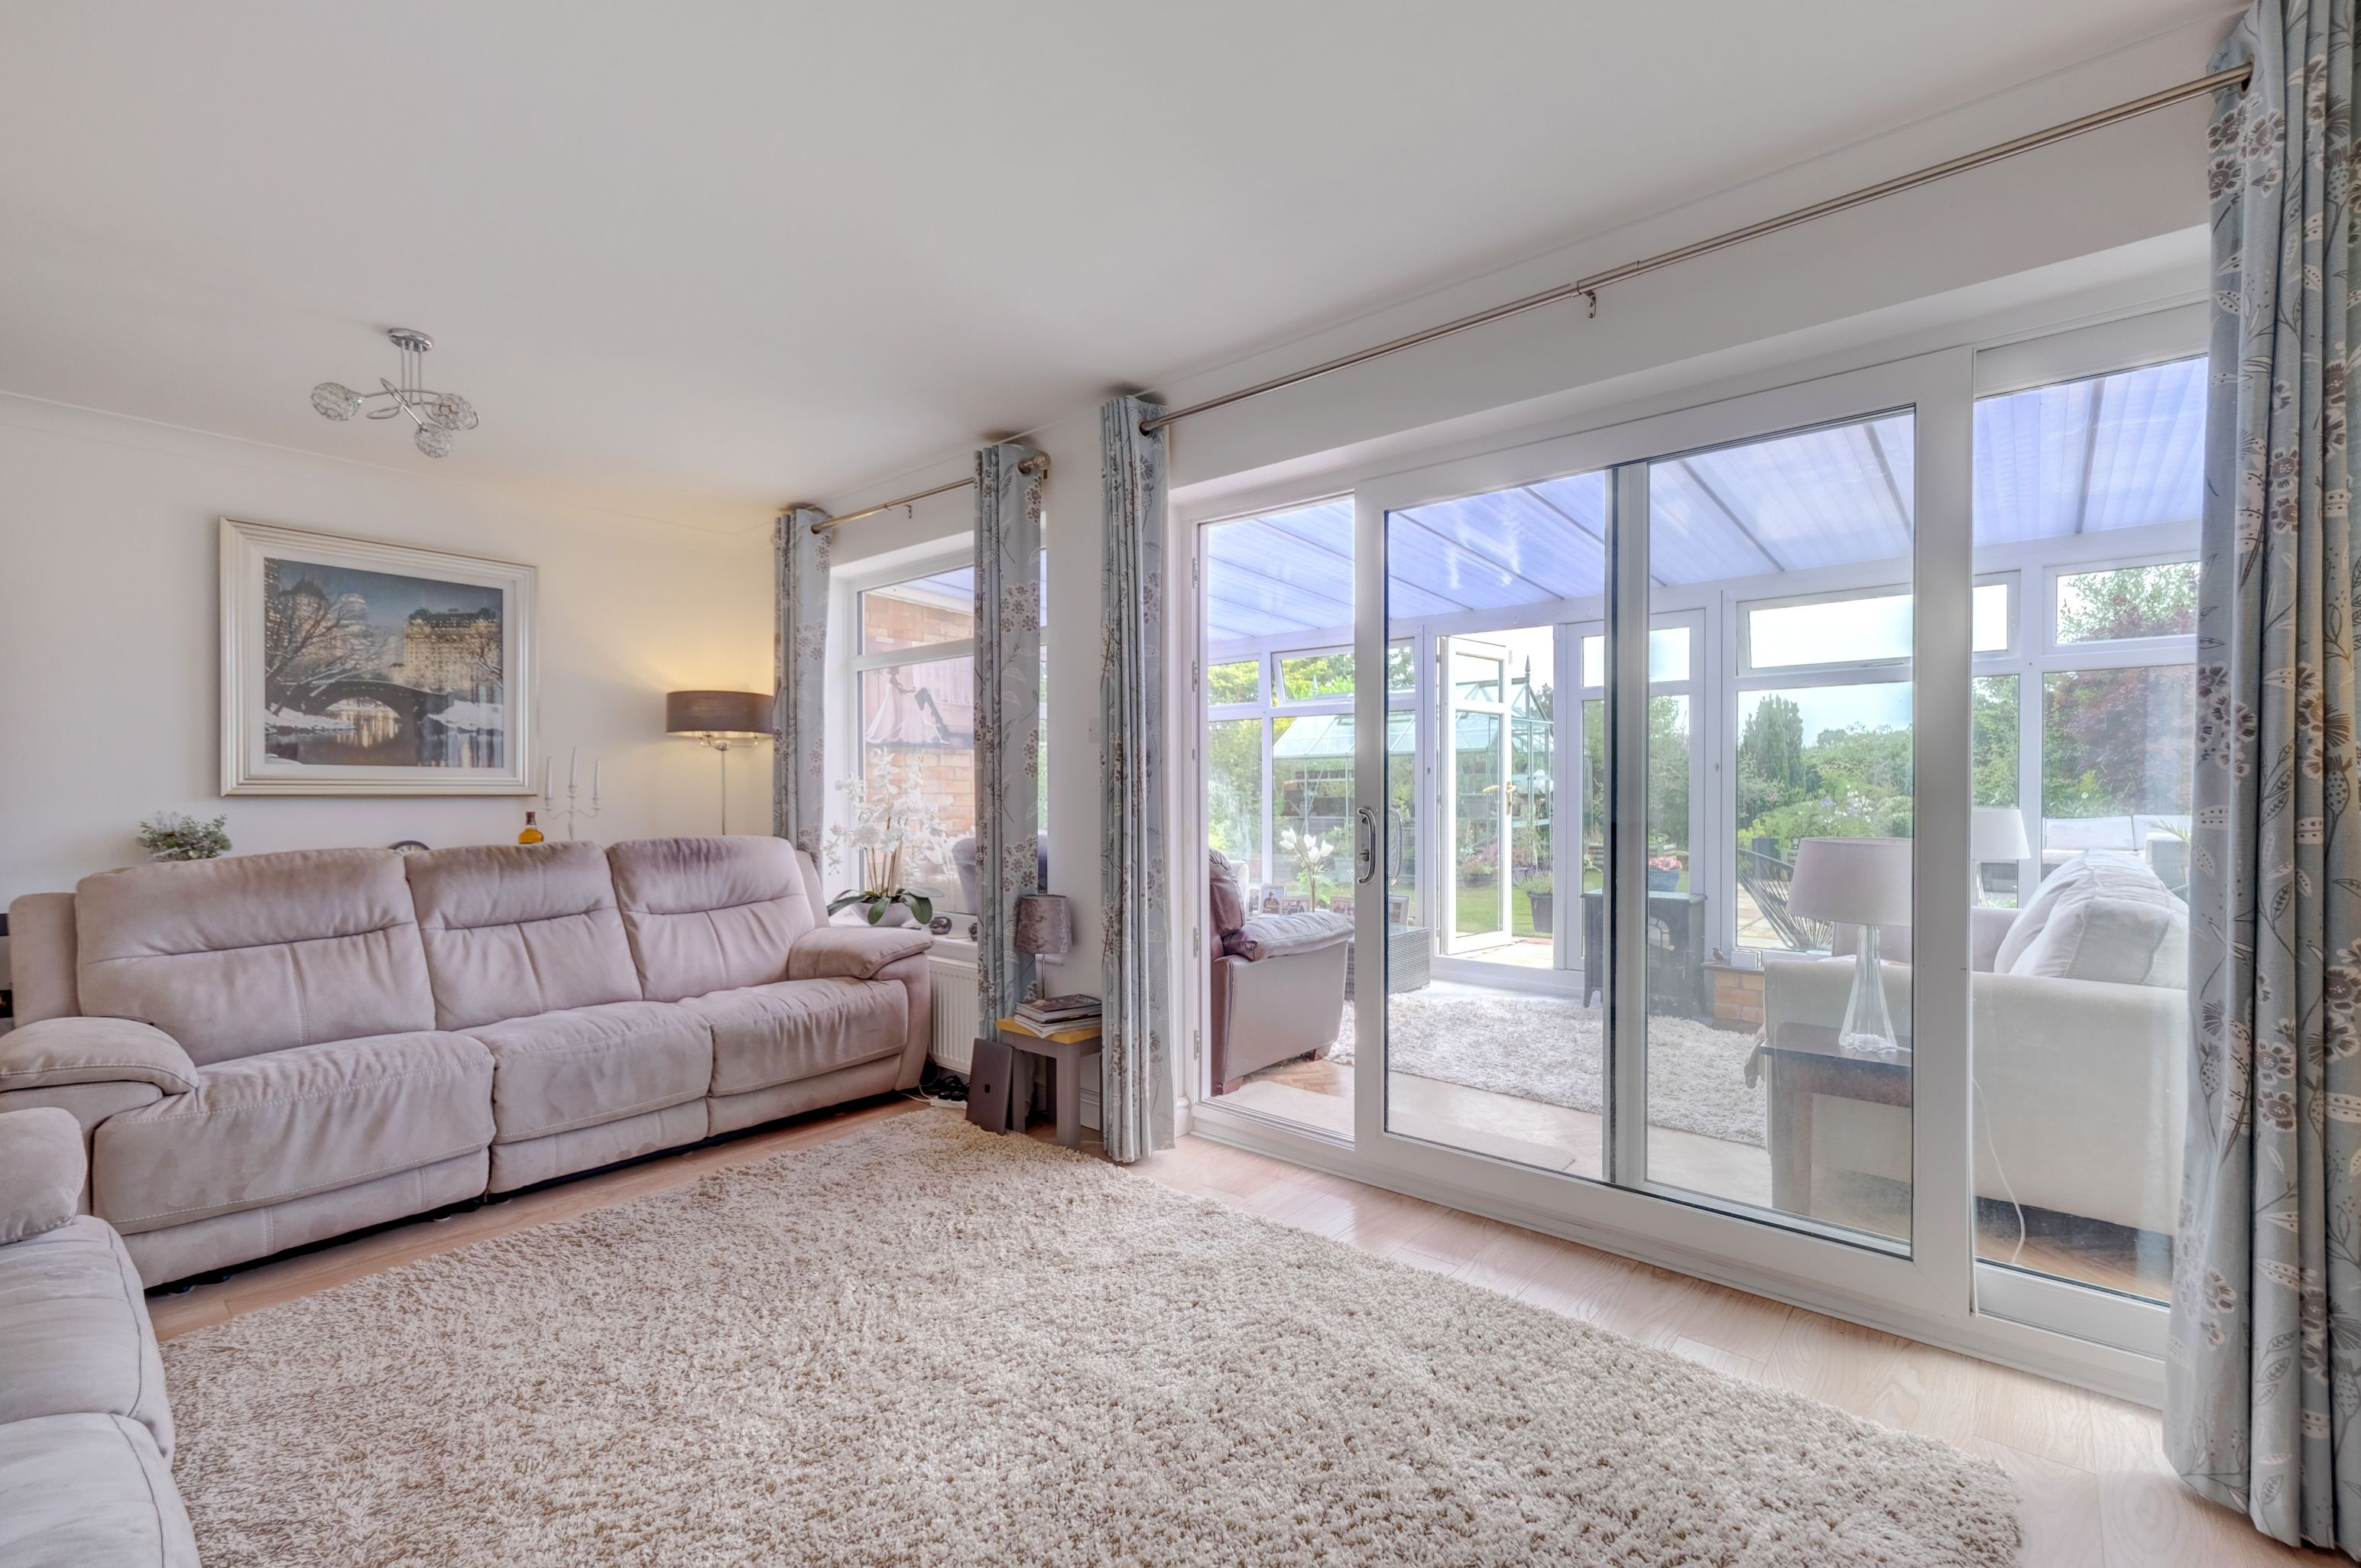 3 bed detached house for sale in Ambleside Way, Nuneaton, CV11, Nuneaton  - Property Image 10